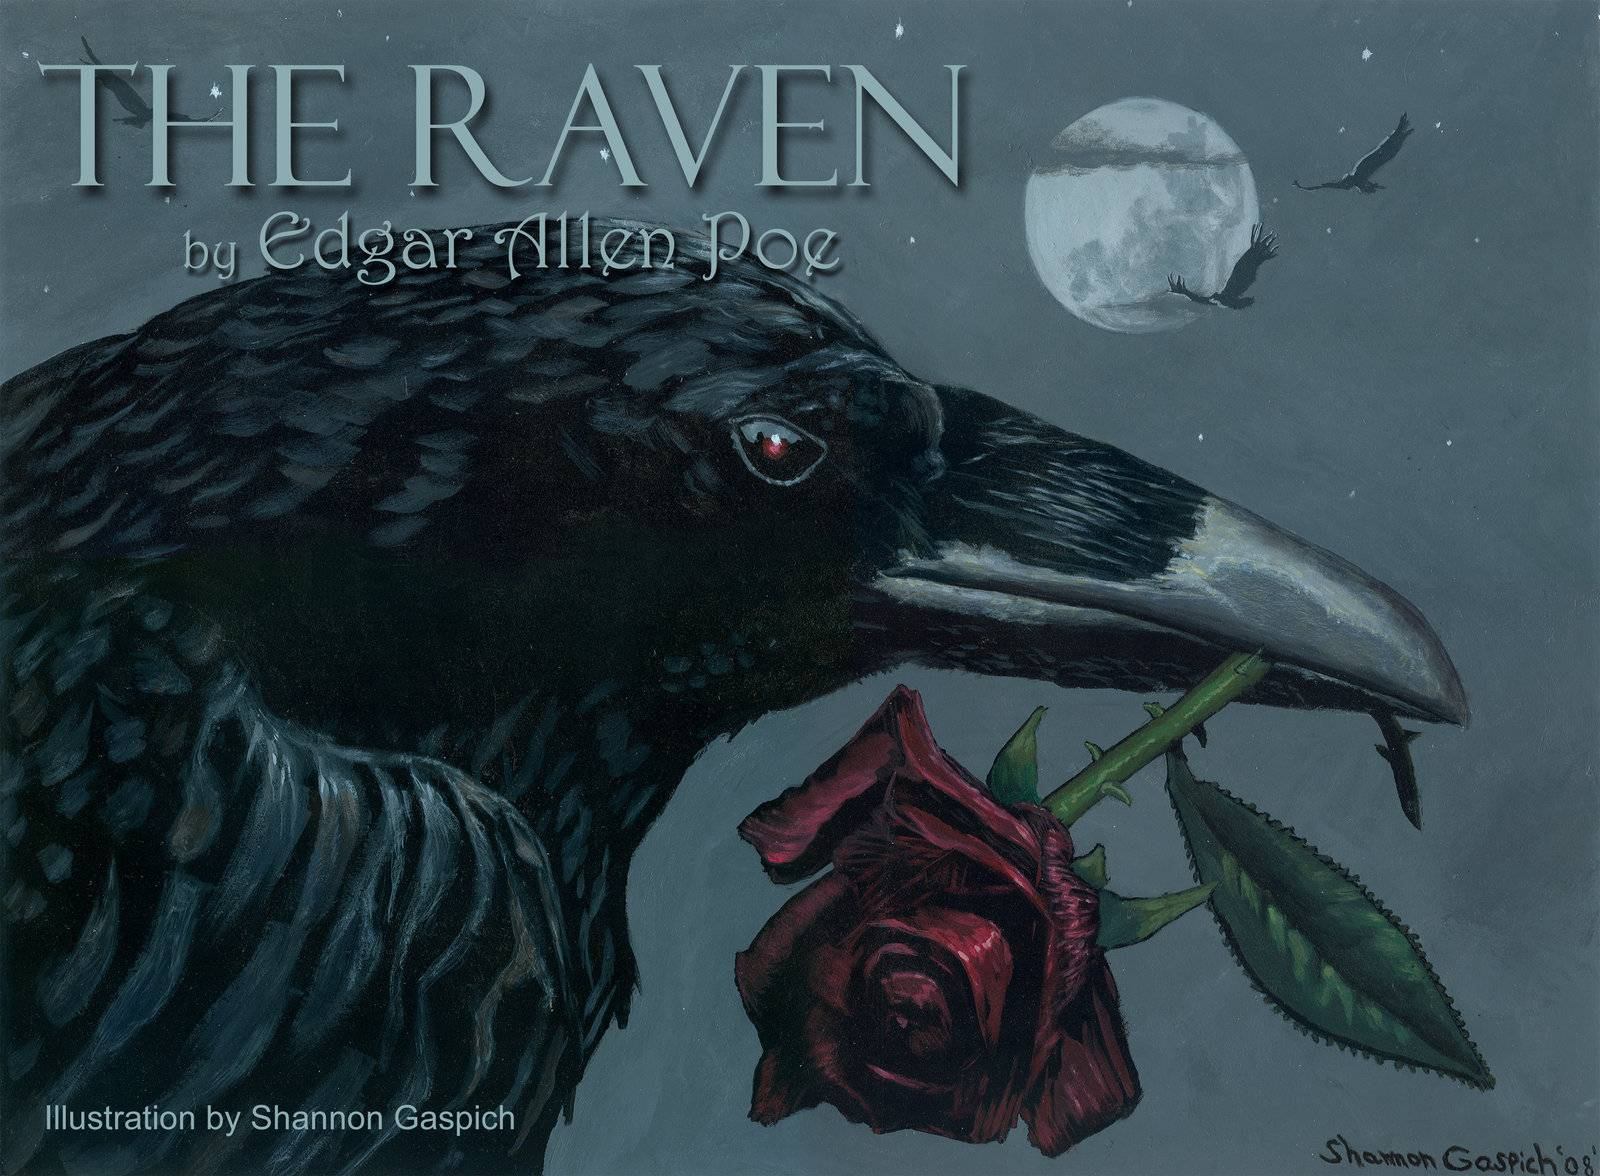 409790 edgar allan poe the raven wallpaper 1600x1176